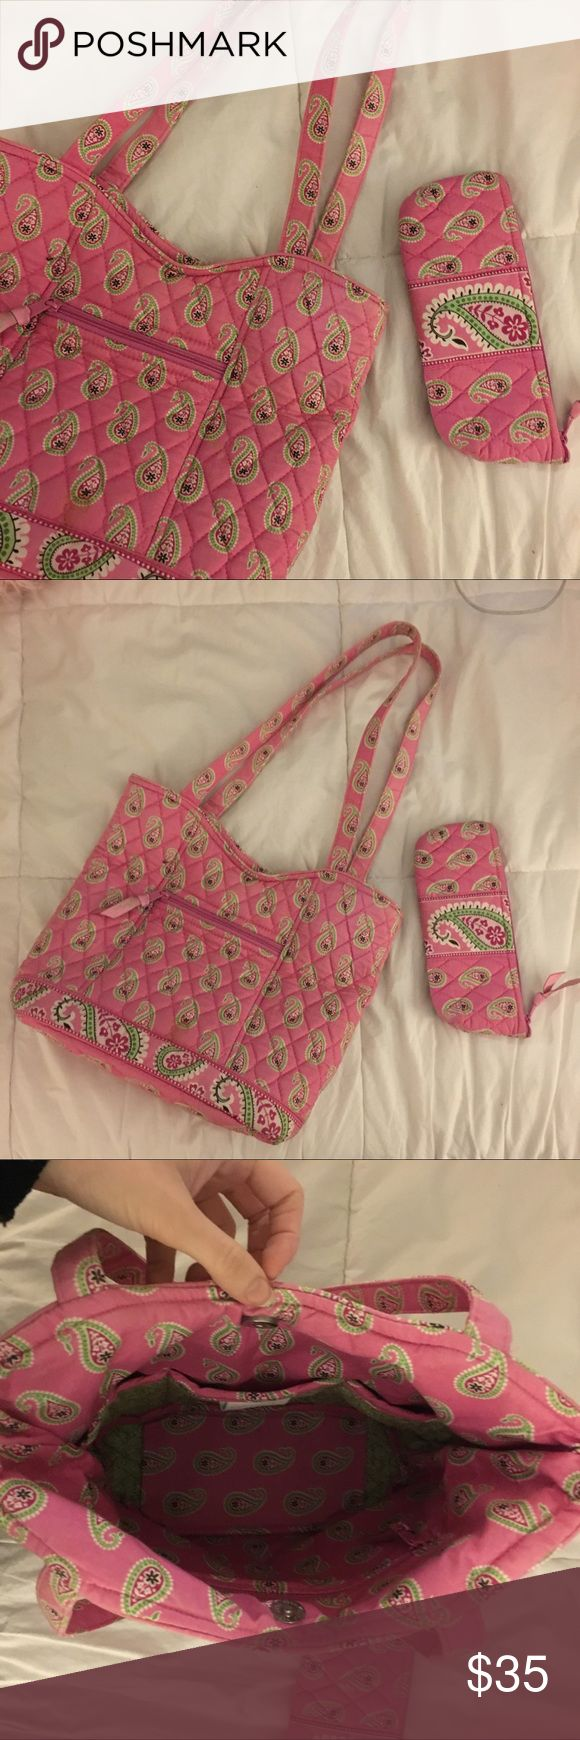 Vera Bradley handbag and cosmetic case Adorable Vera Bradley handbag and cosmetic case. Handbag had light fading and one spot pictured above. Retired pattern and in wonderful condition! Vera Bradley Bags